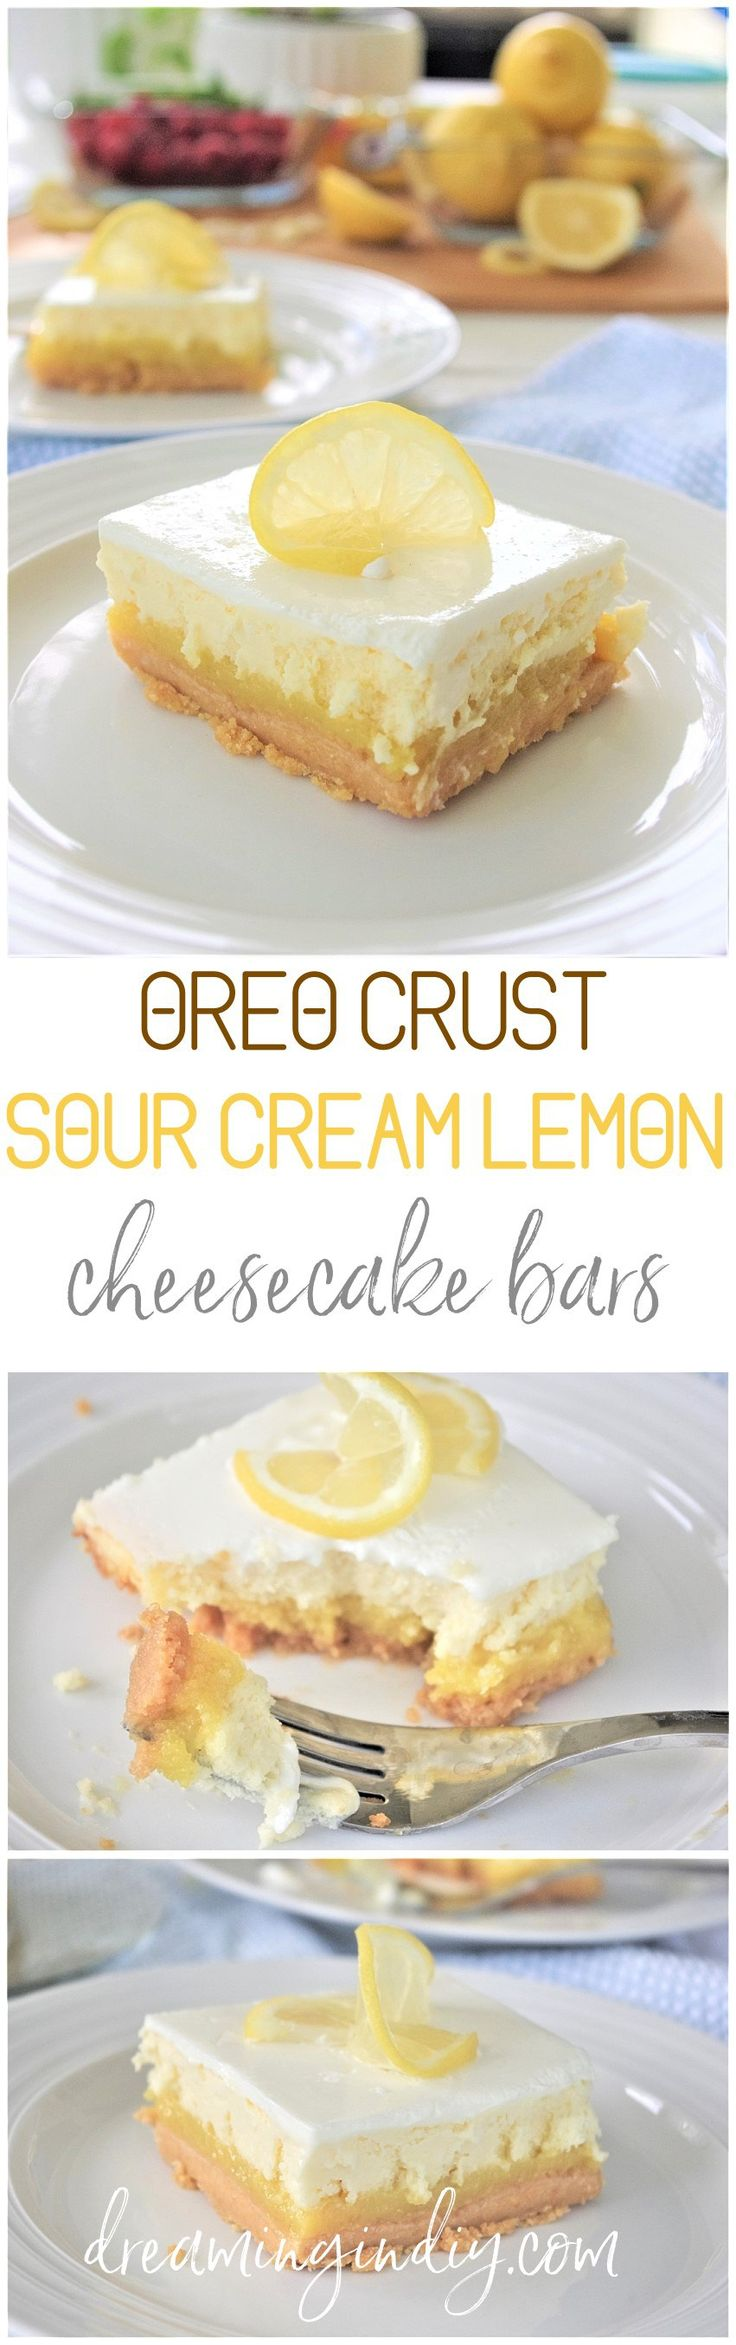 Perfect for Mother's Day Brunch menus - Lemon Sour Cream Cheesecake Dessert Bars with Lemon Oreo Crust - Easy Layered Treats Yummy Recipe via Dreaming in DIY